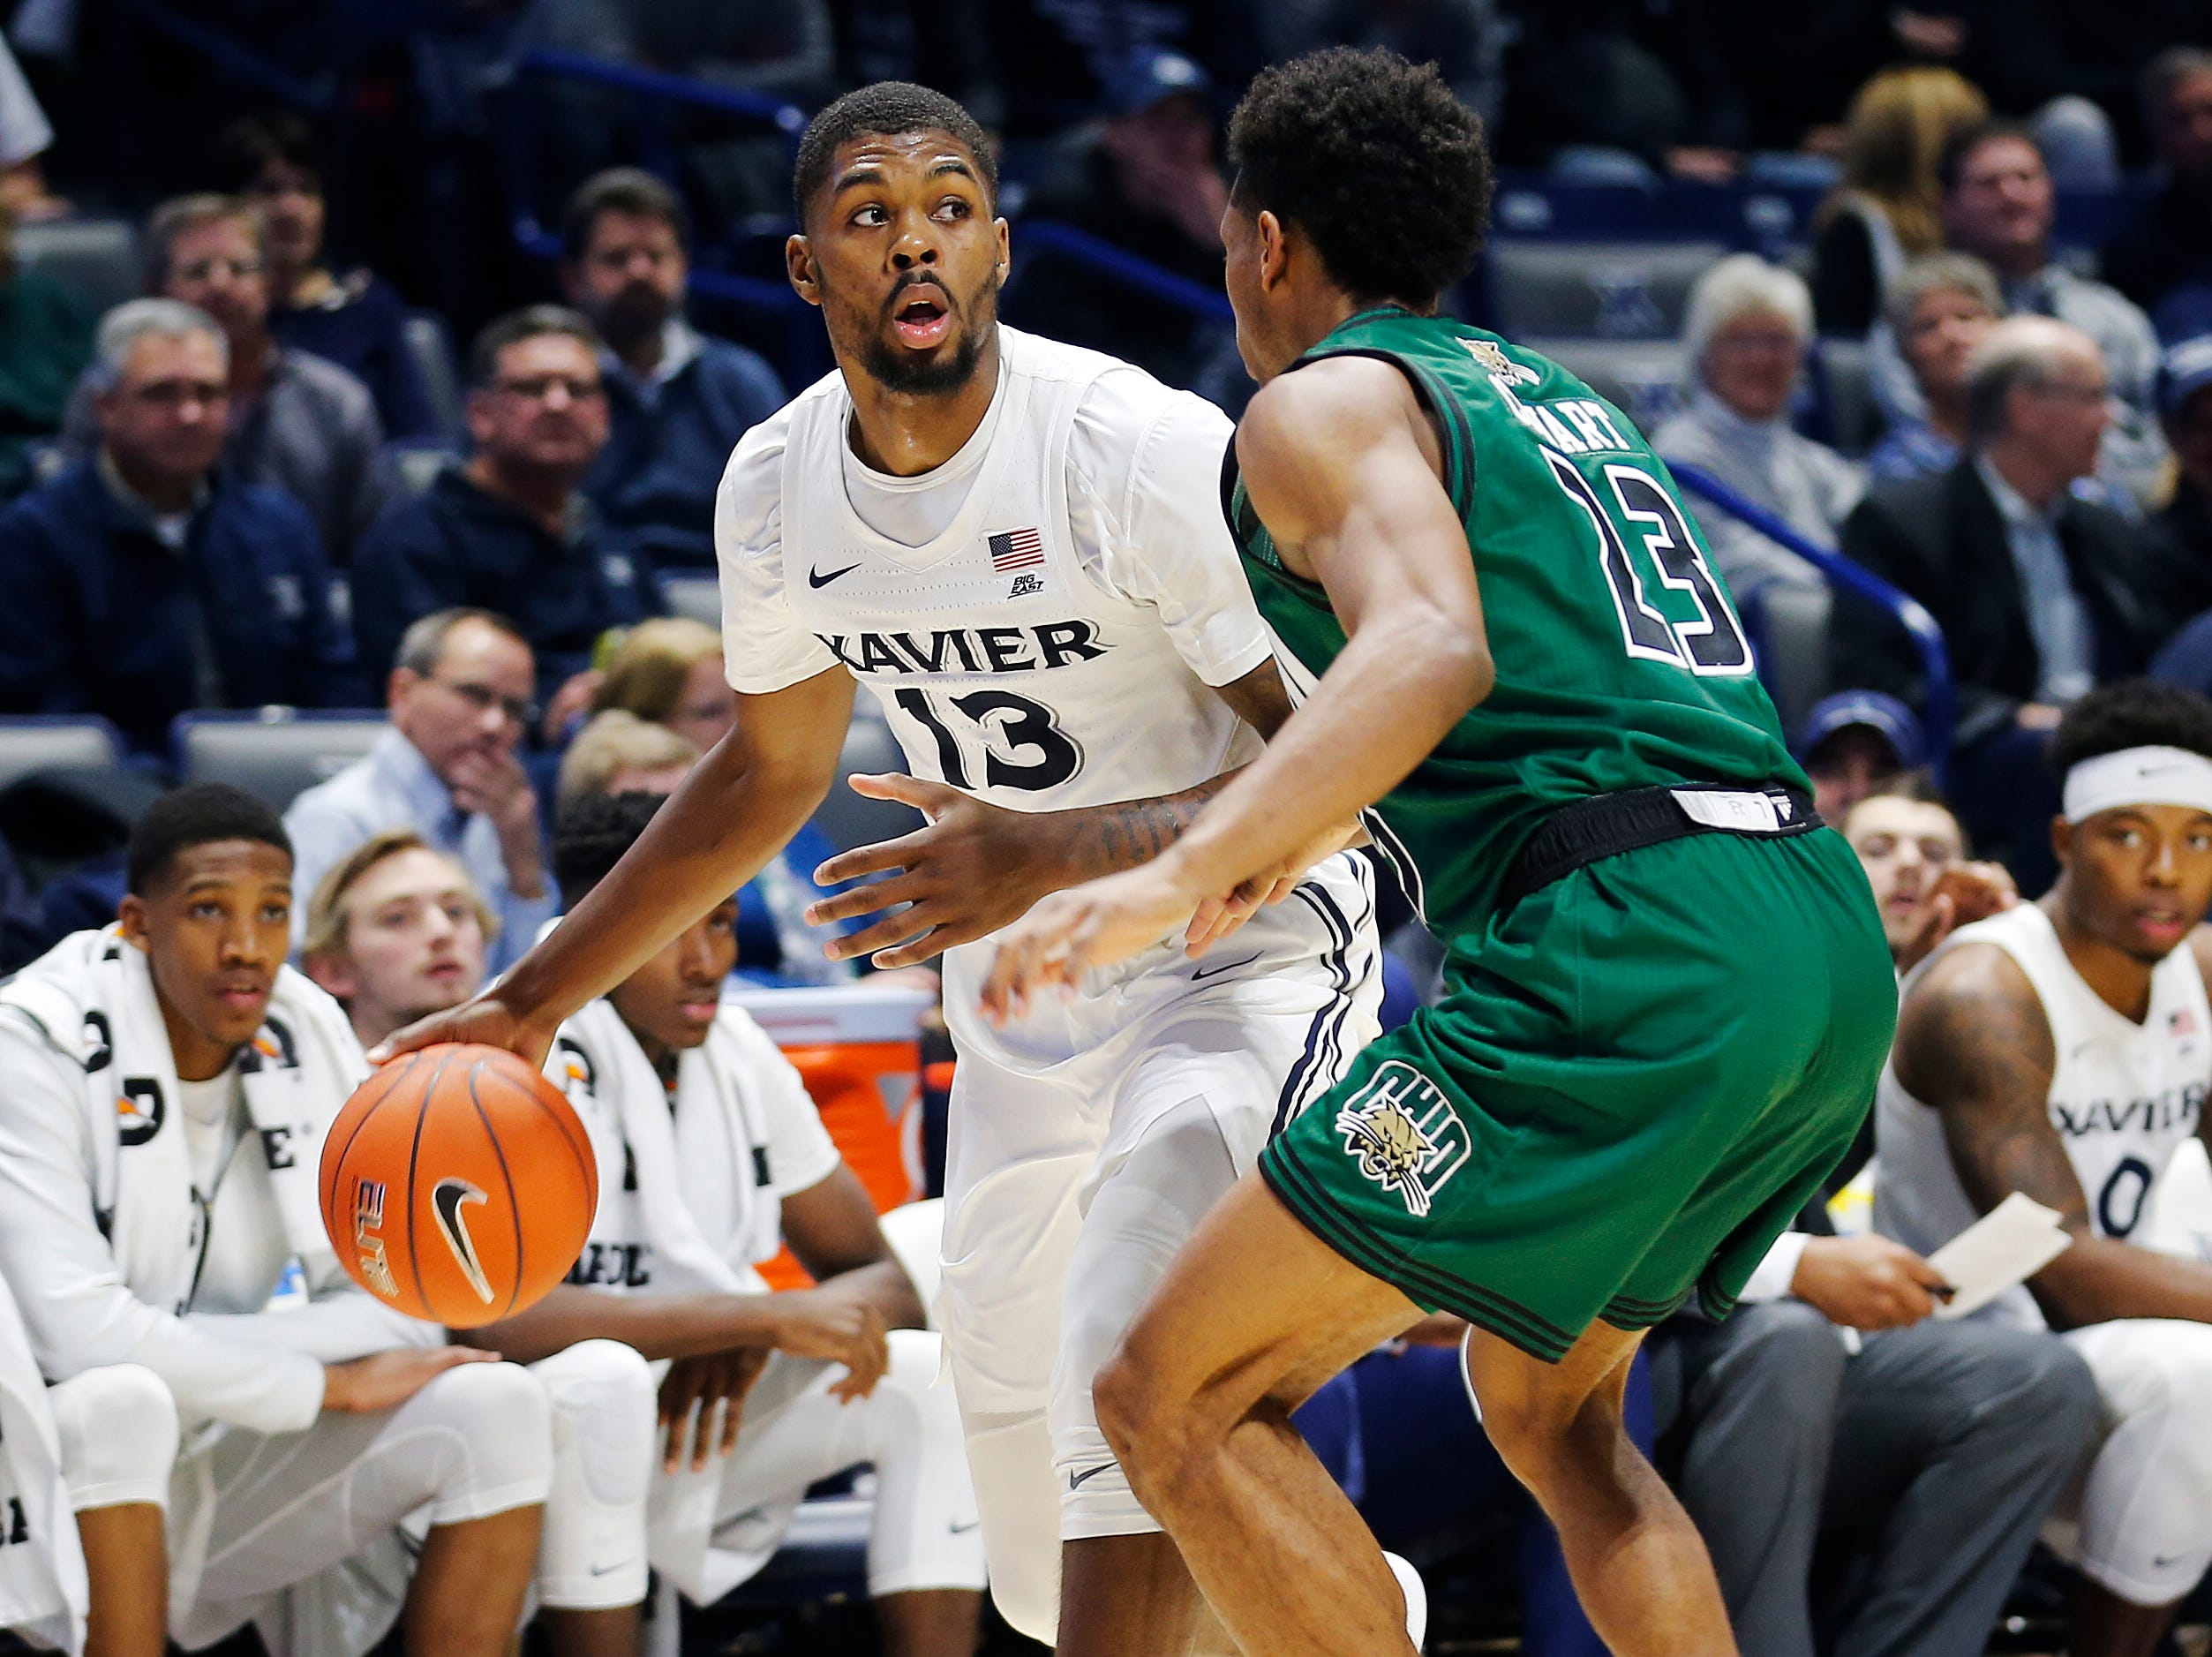 Xavier Musketeers forward Naji Marshall (13) looks to make a pass around Ohio Bobcats guard Antonio Cowart Jr. (23) in the second half at Cintas Center Wednesday December 5, 2018. Xavier won 82-61.